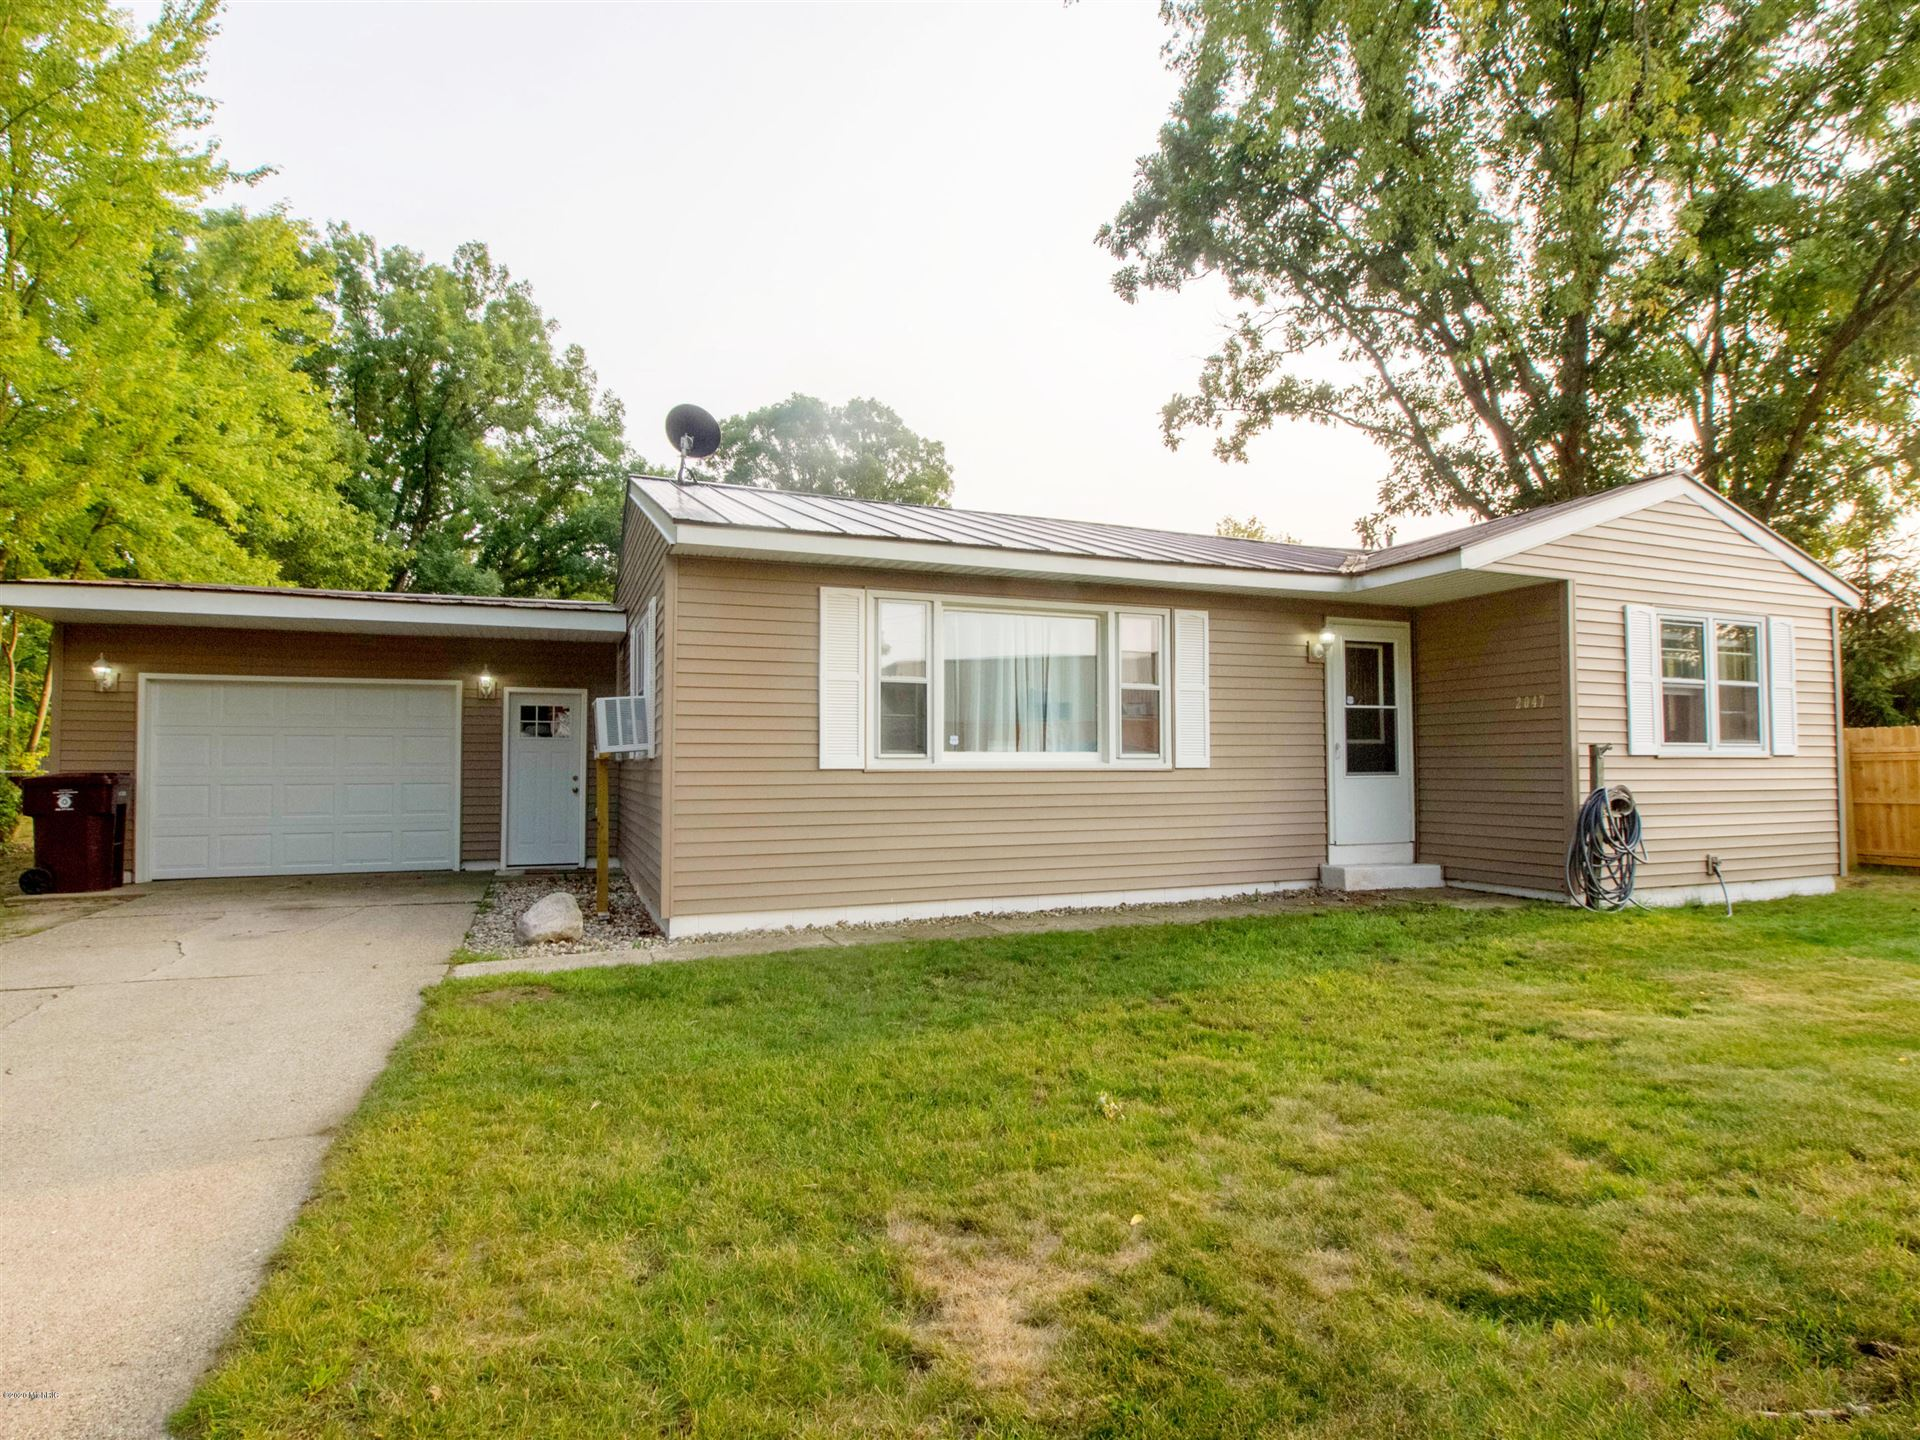 Photo of 2047 Ingram Court, Muskegon, MI 49442 (MLS # 20038722)